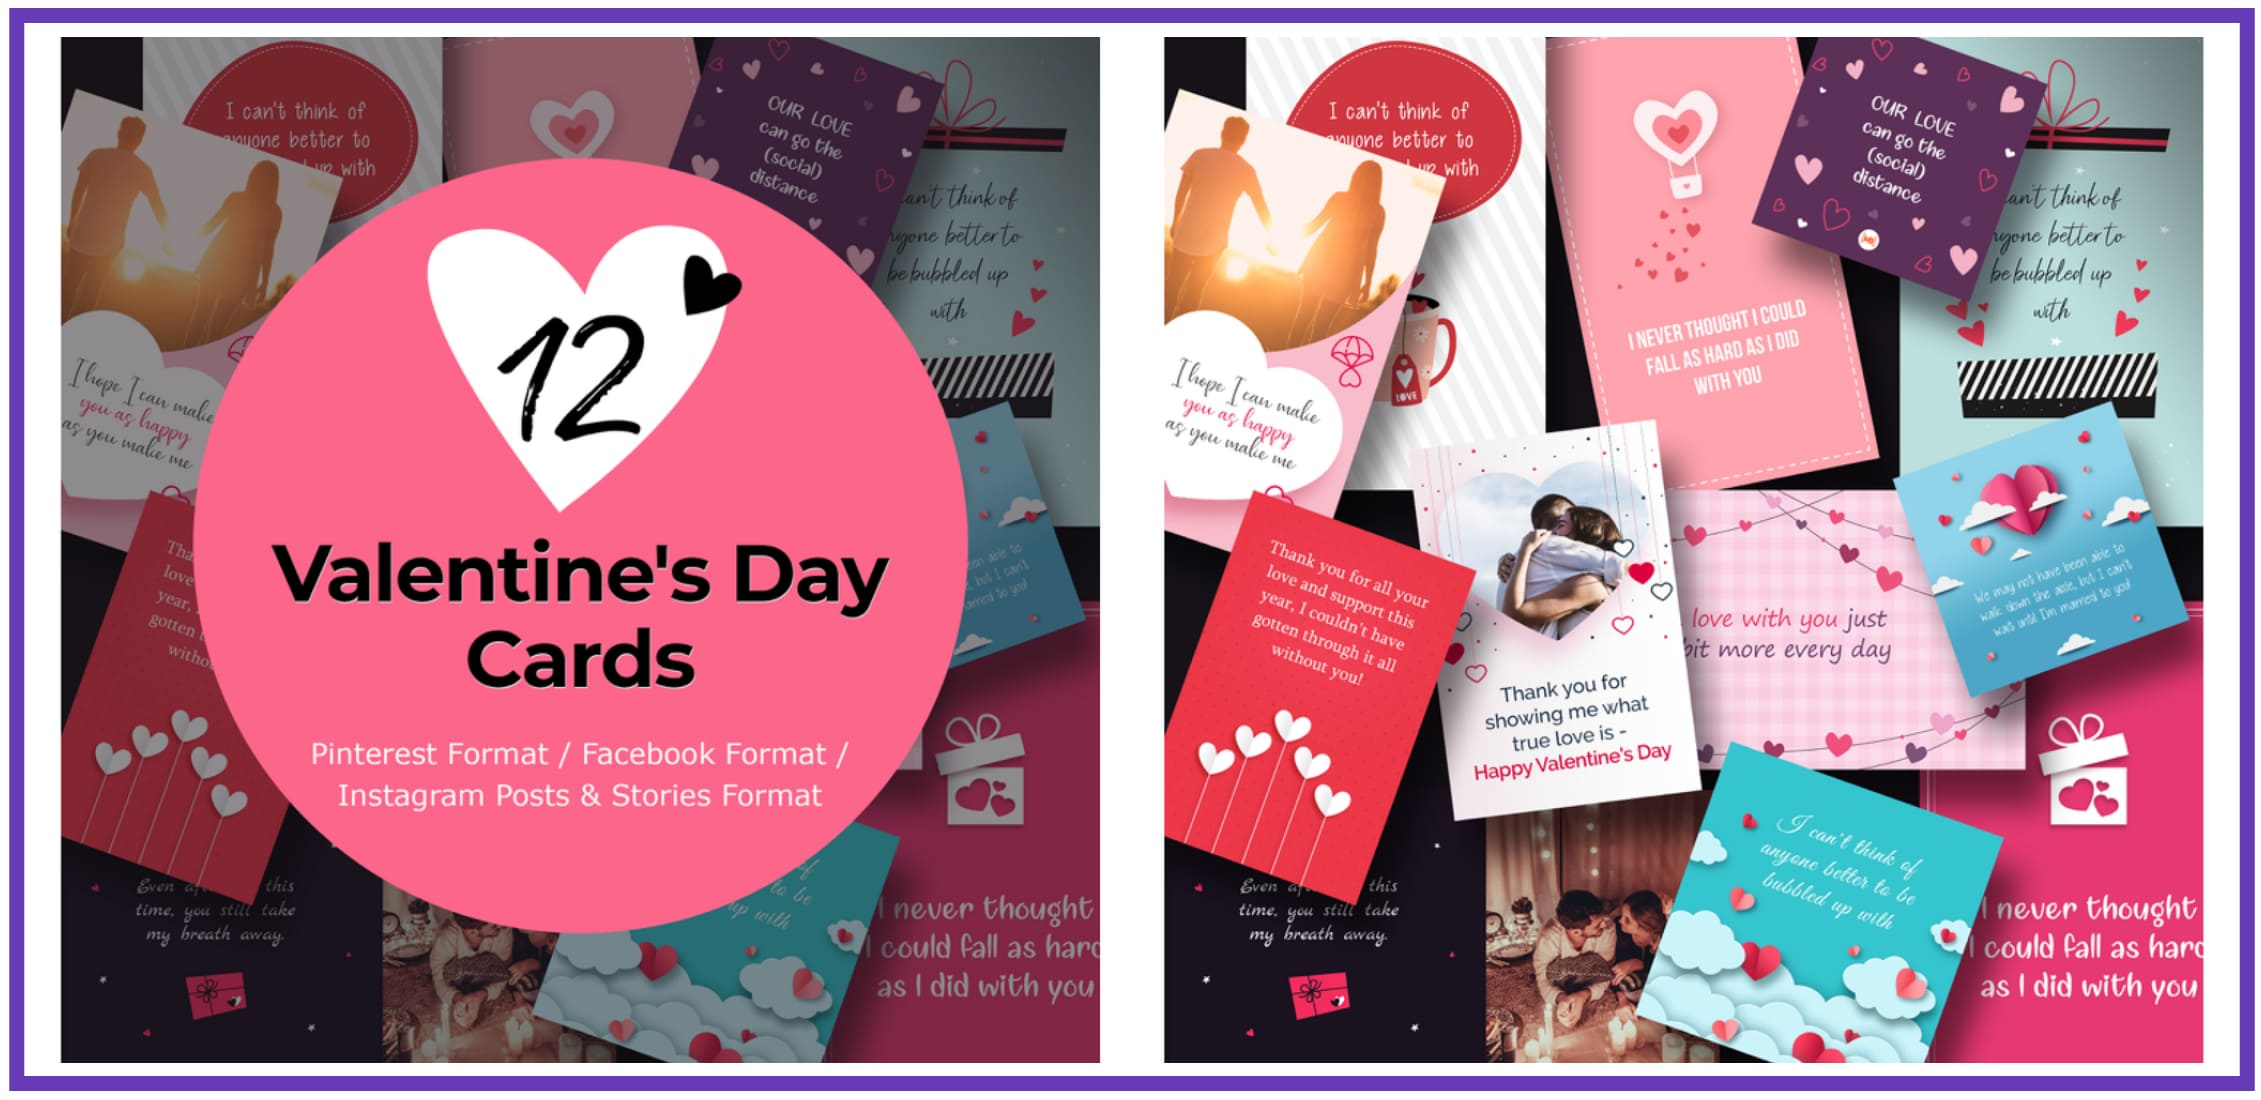 70+ Valentine's Day Cards 2021. Do not Forget about a Heartfelt Card for Your Valentine - valentines day quotes bundle 1